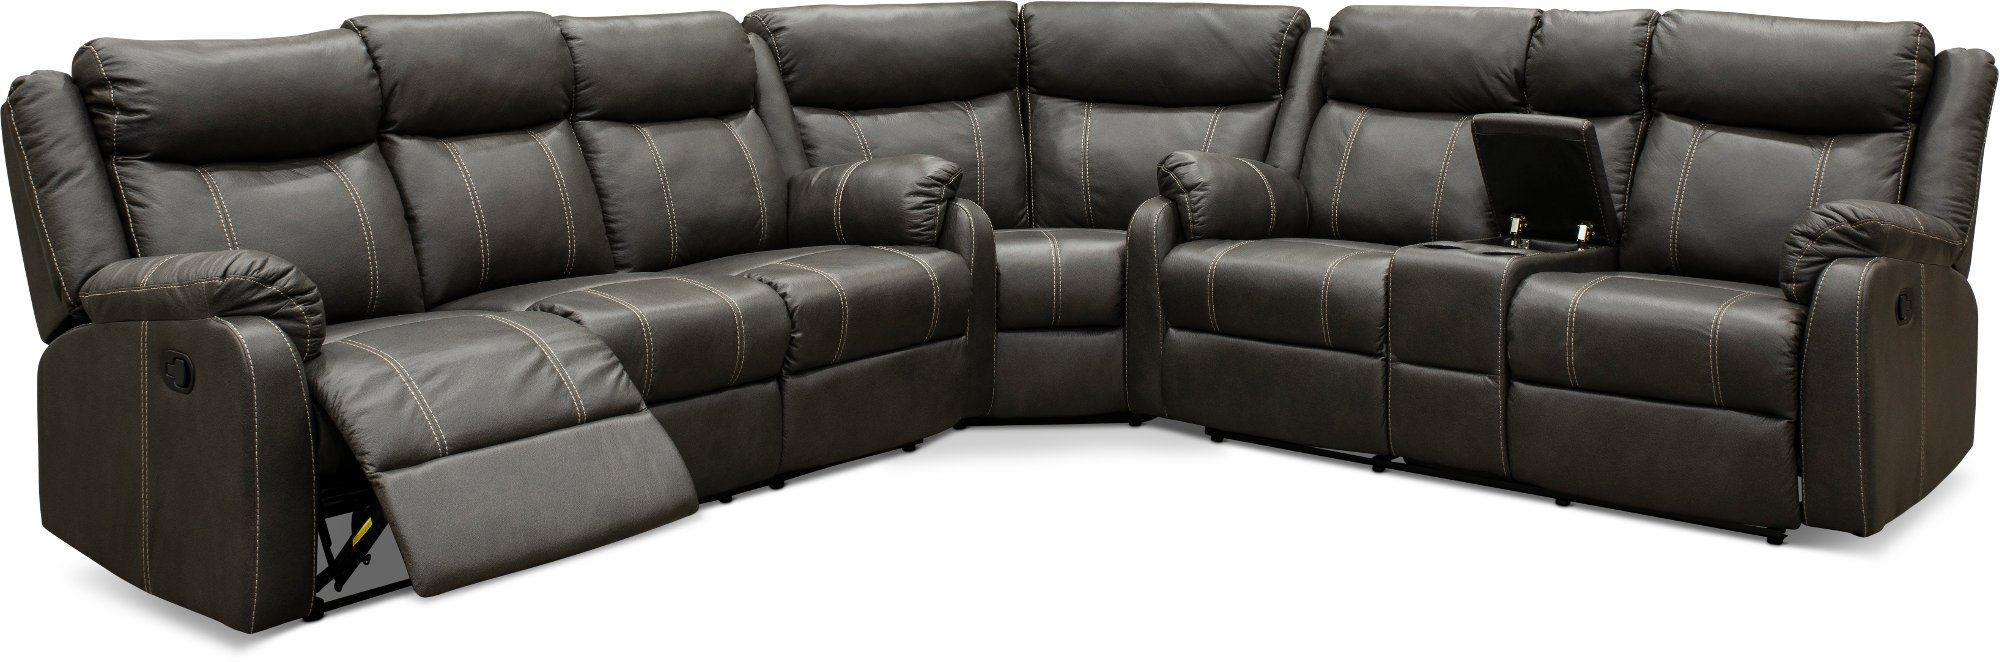 Valor Carbon Gray Dual Reclining Sectional Sofa Domino Reclining Sectional Sectional Sofa Sectional